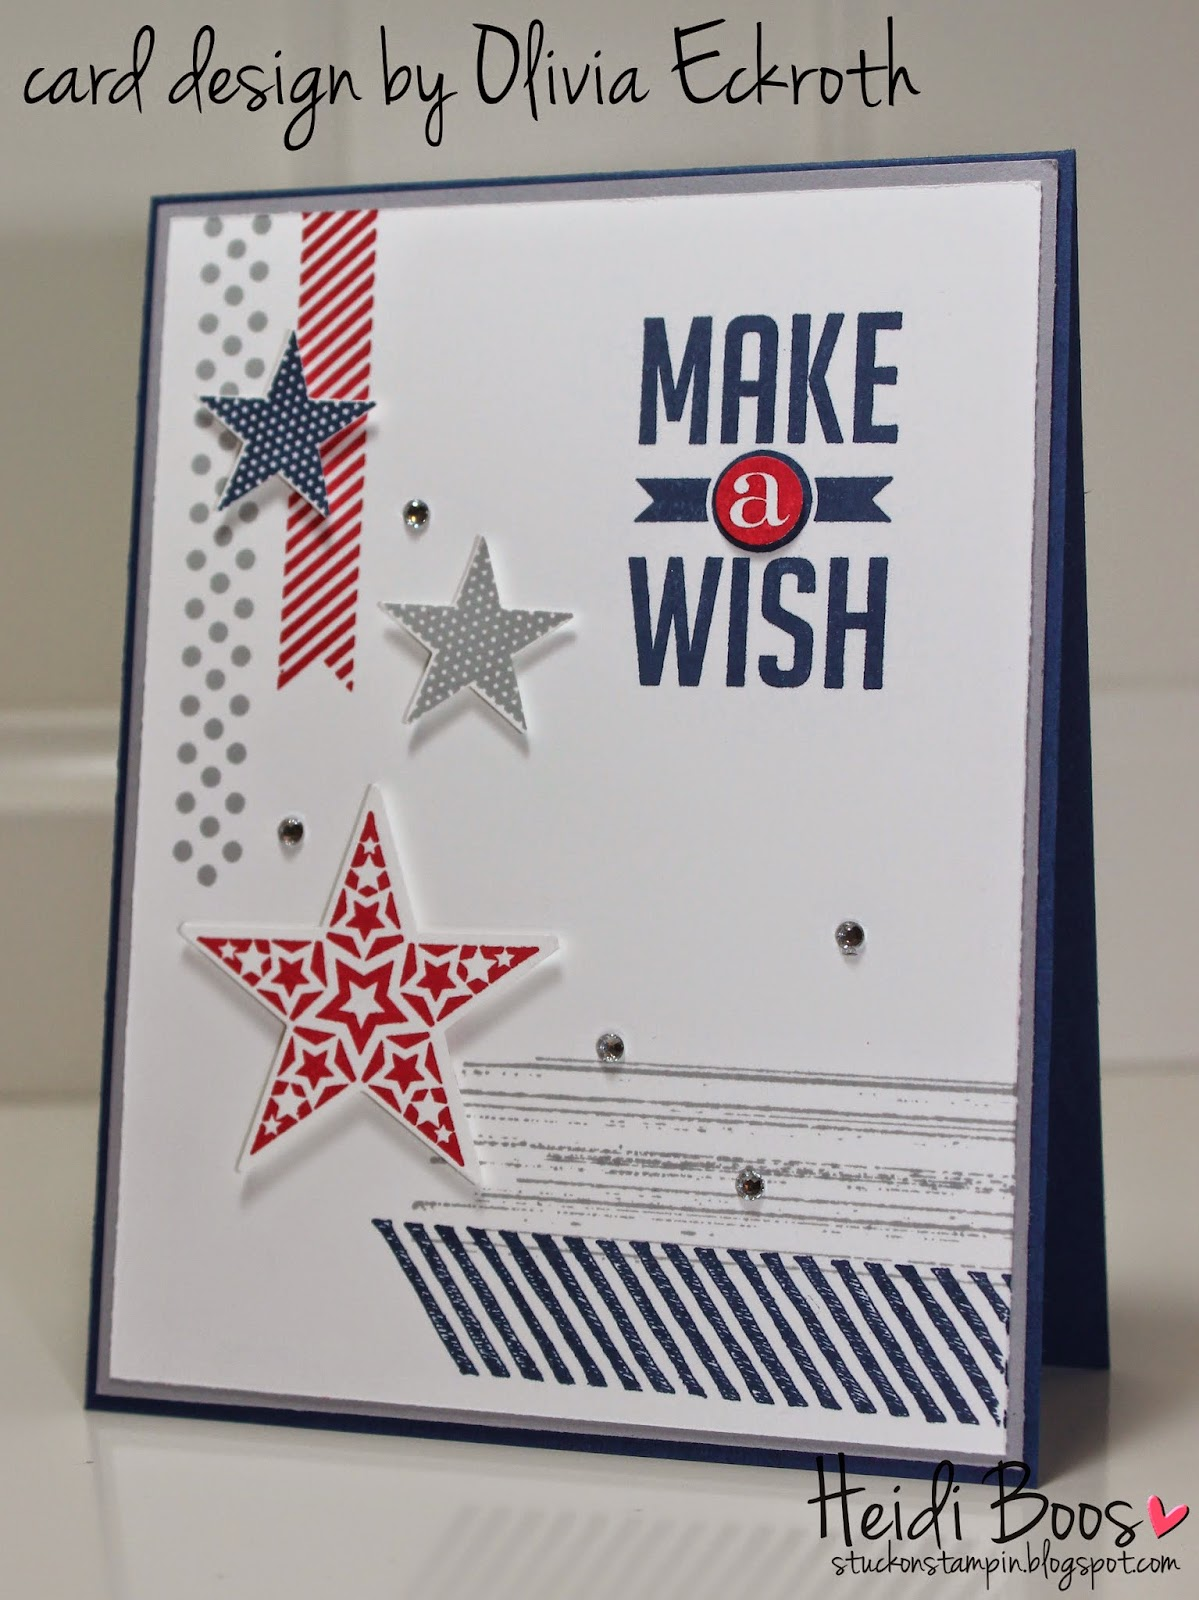 This Last Card Was One My 8 Year Old Daughter Made She Also Wanted To Create A For Her Cousins Birthday And Since It Is On The 4th Of July Stuck